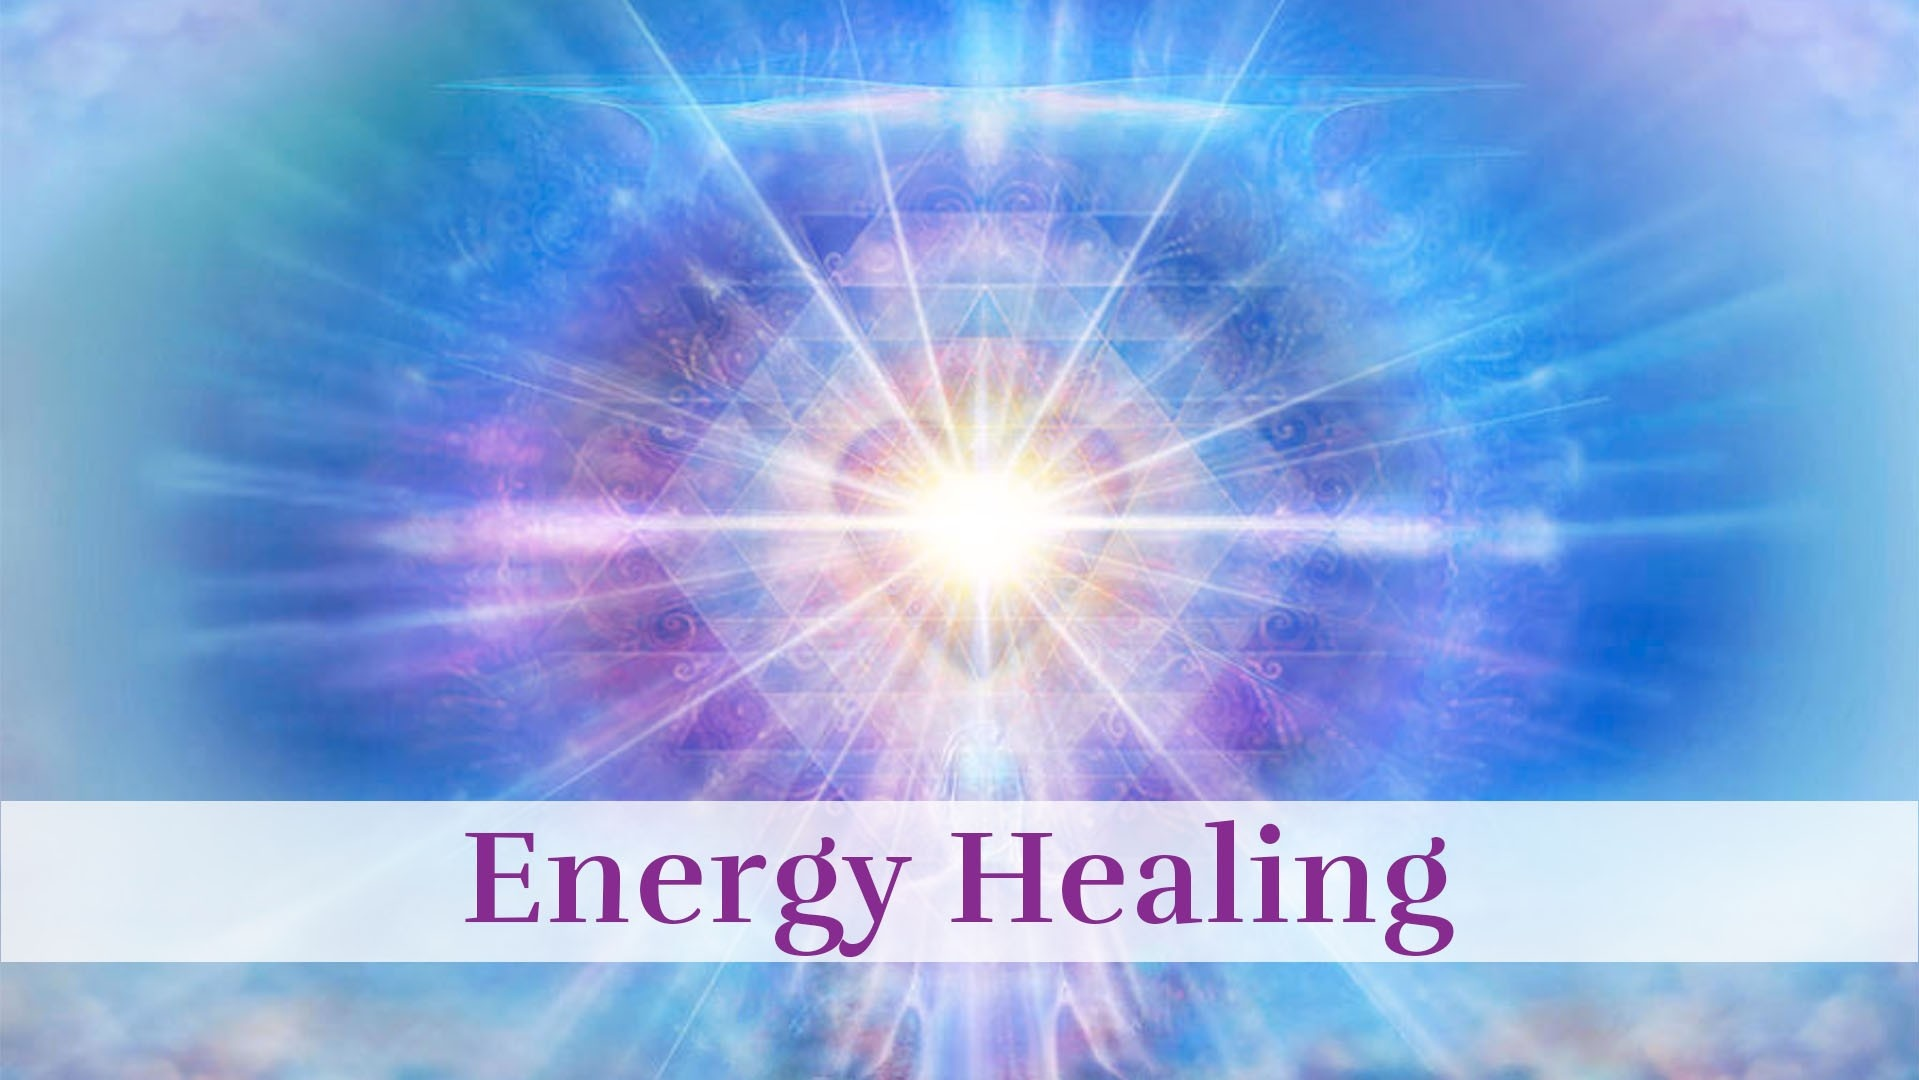 Energetic healing helps you make quantum leaps forward through trauma.